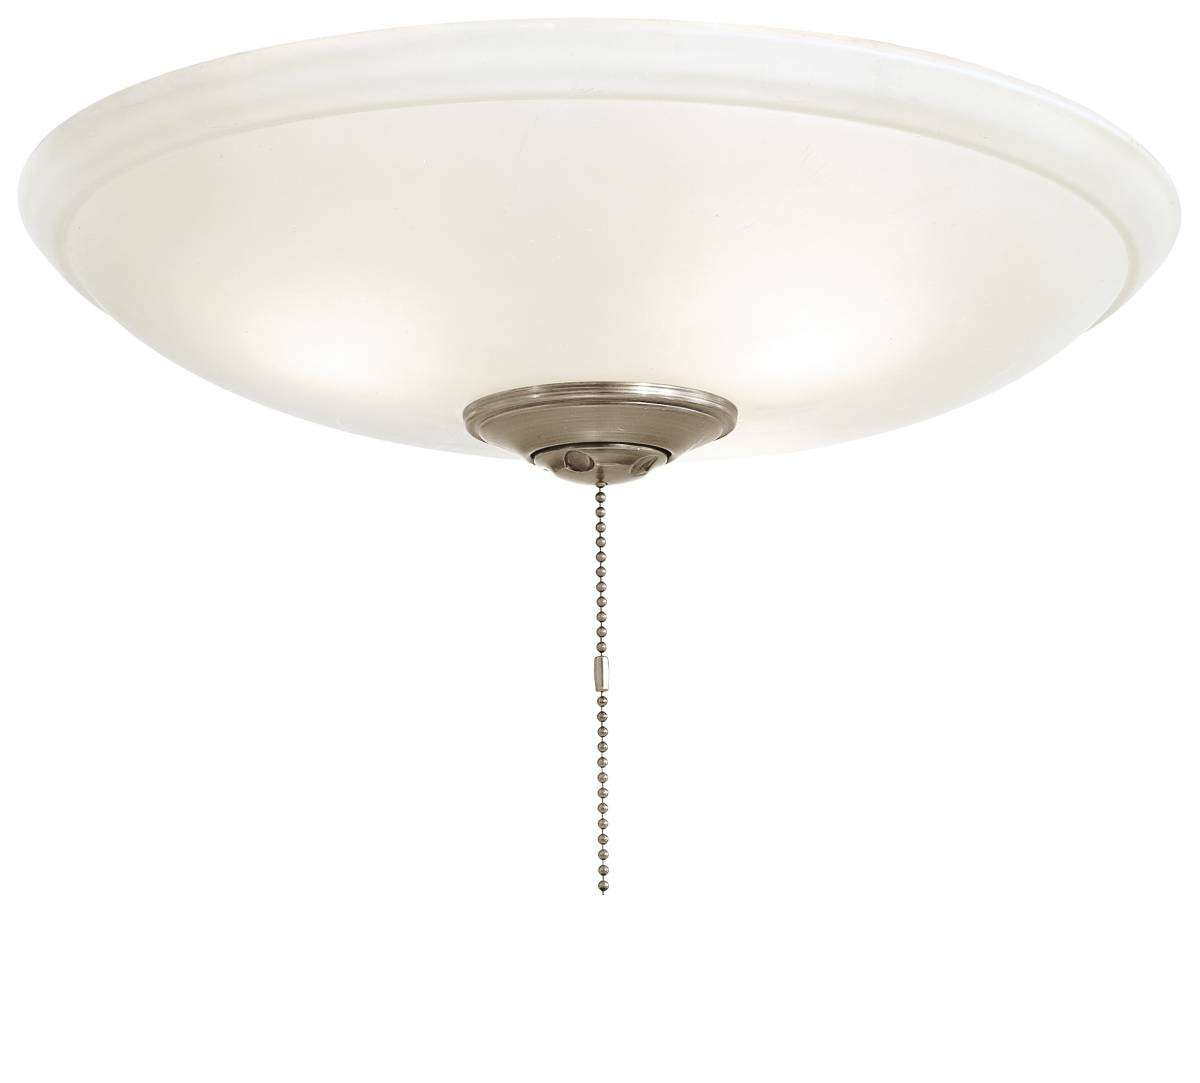 Minka Aire K9515-1 Single Bowl No specific finish Ceiling Fan Light Fixture